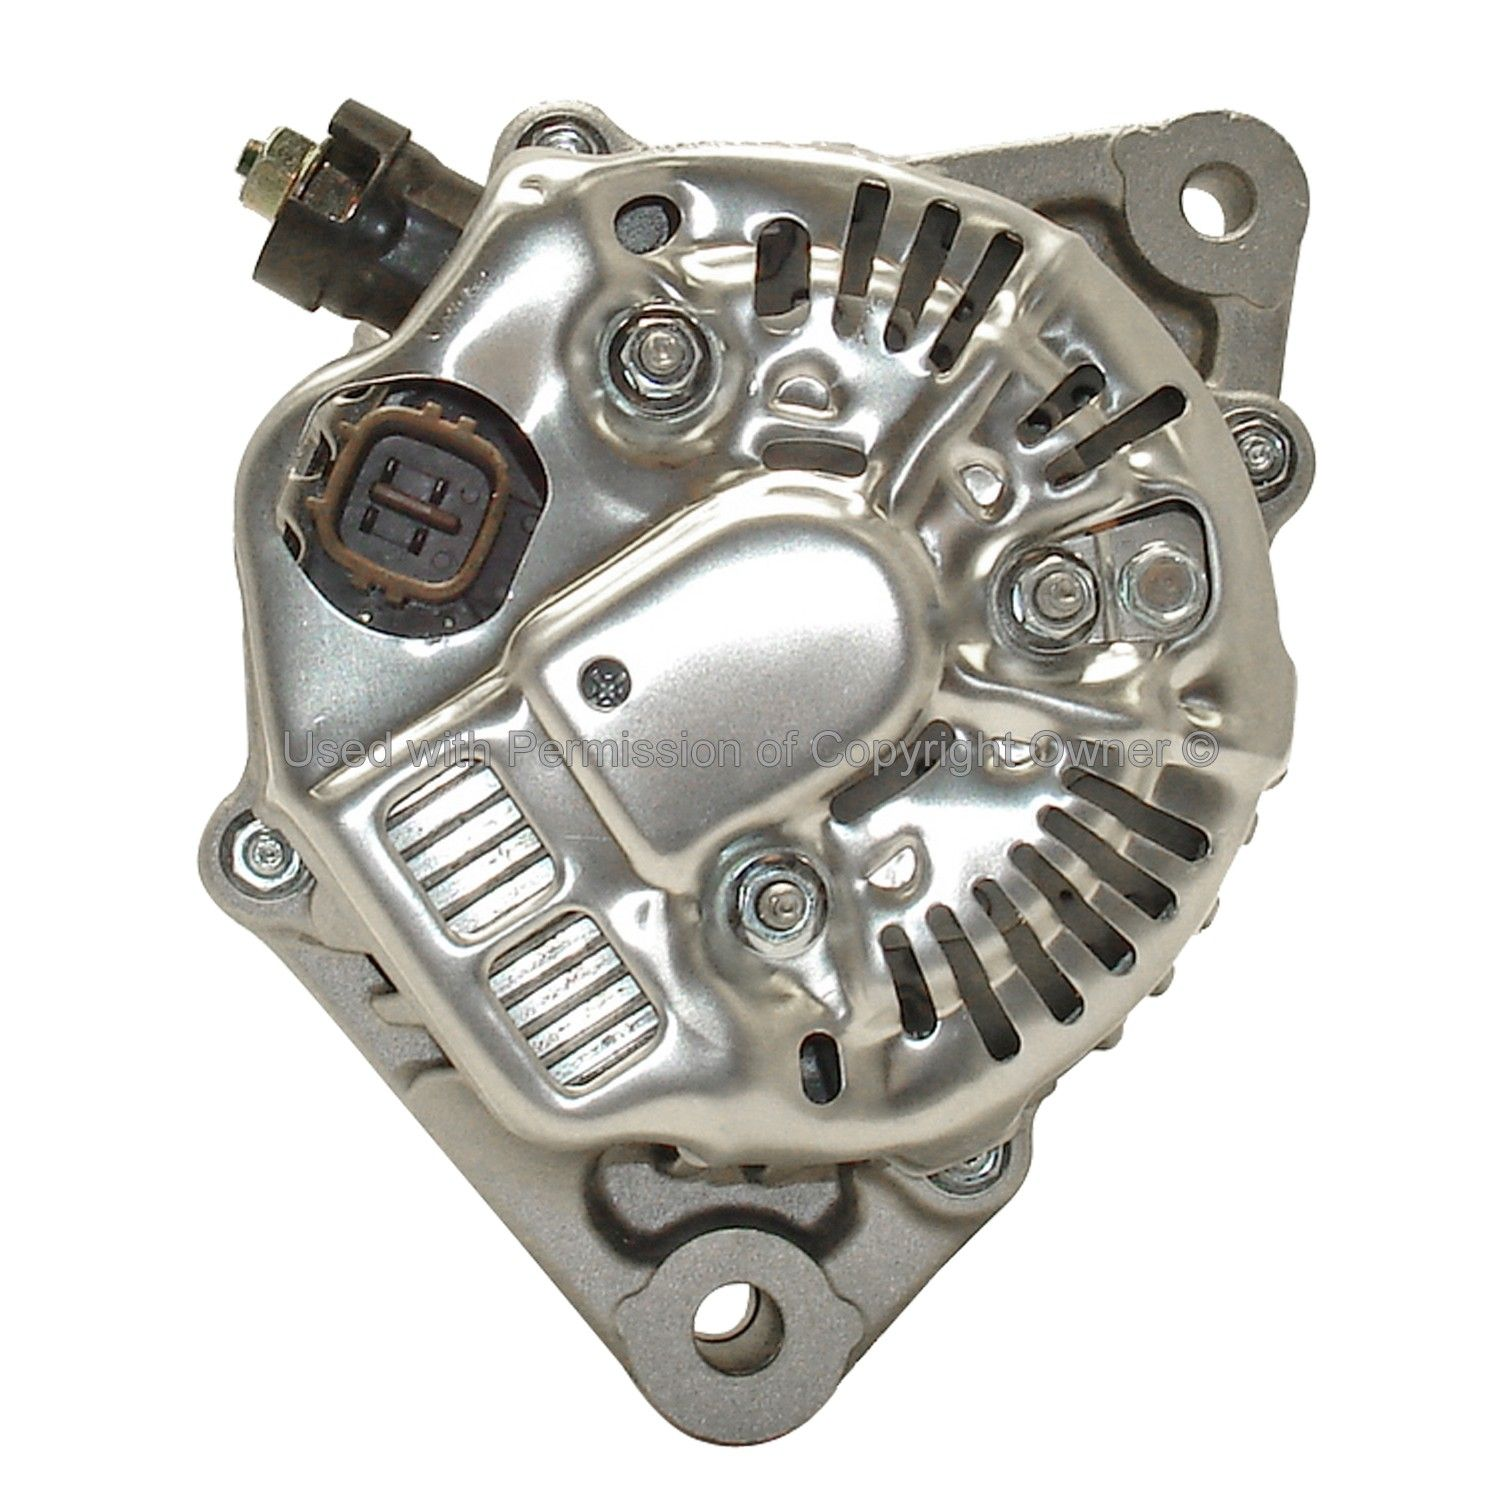 Honda Prelude Alternator Replacement Bosch Denso Mpa Remy Go 1999 Engine 1997 4 Cyl 22l 13722